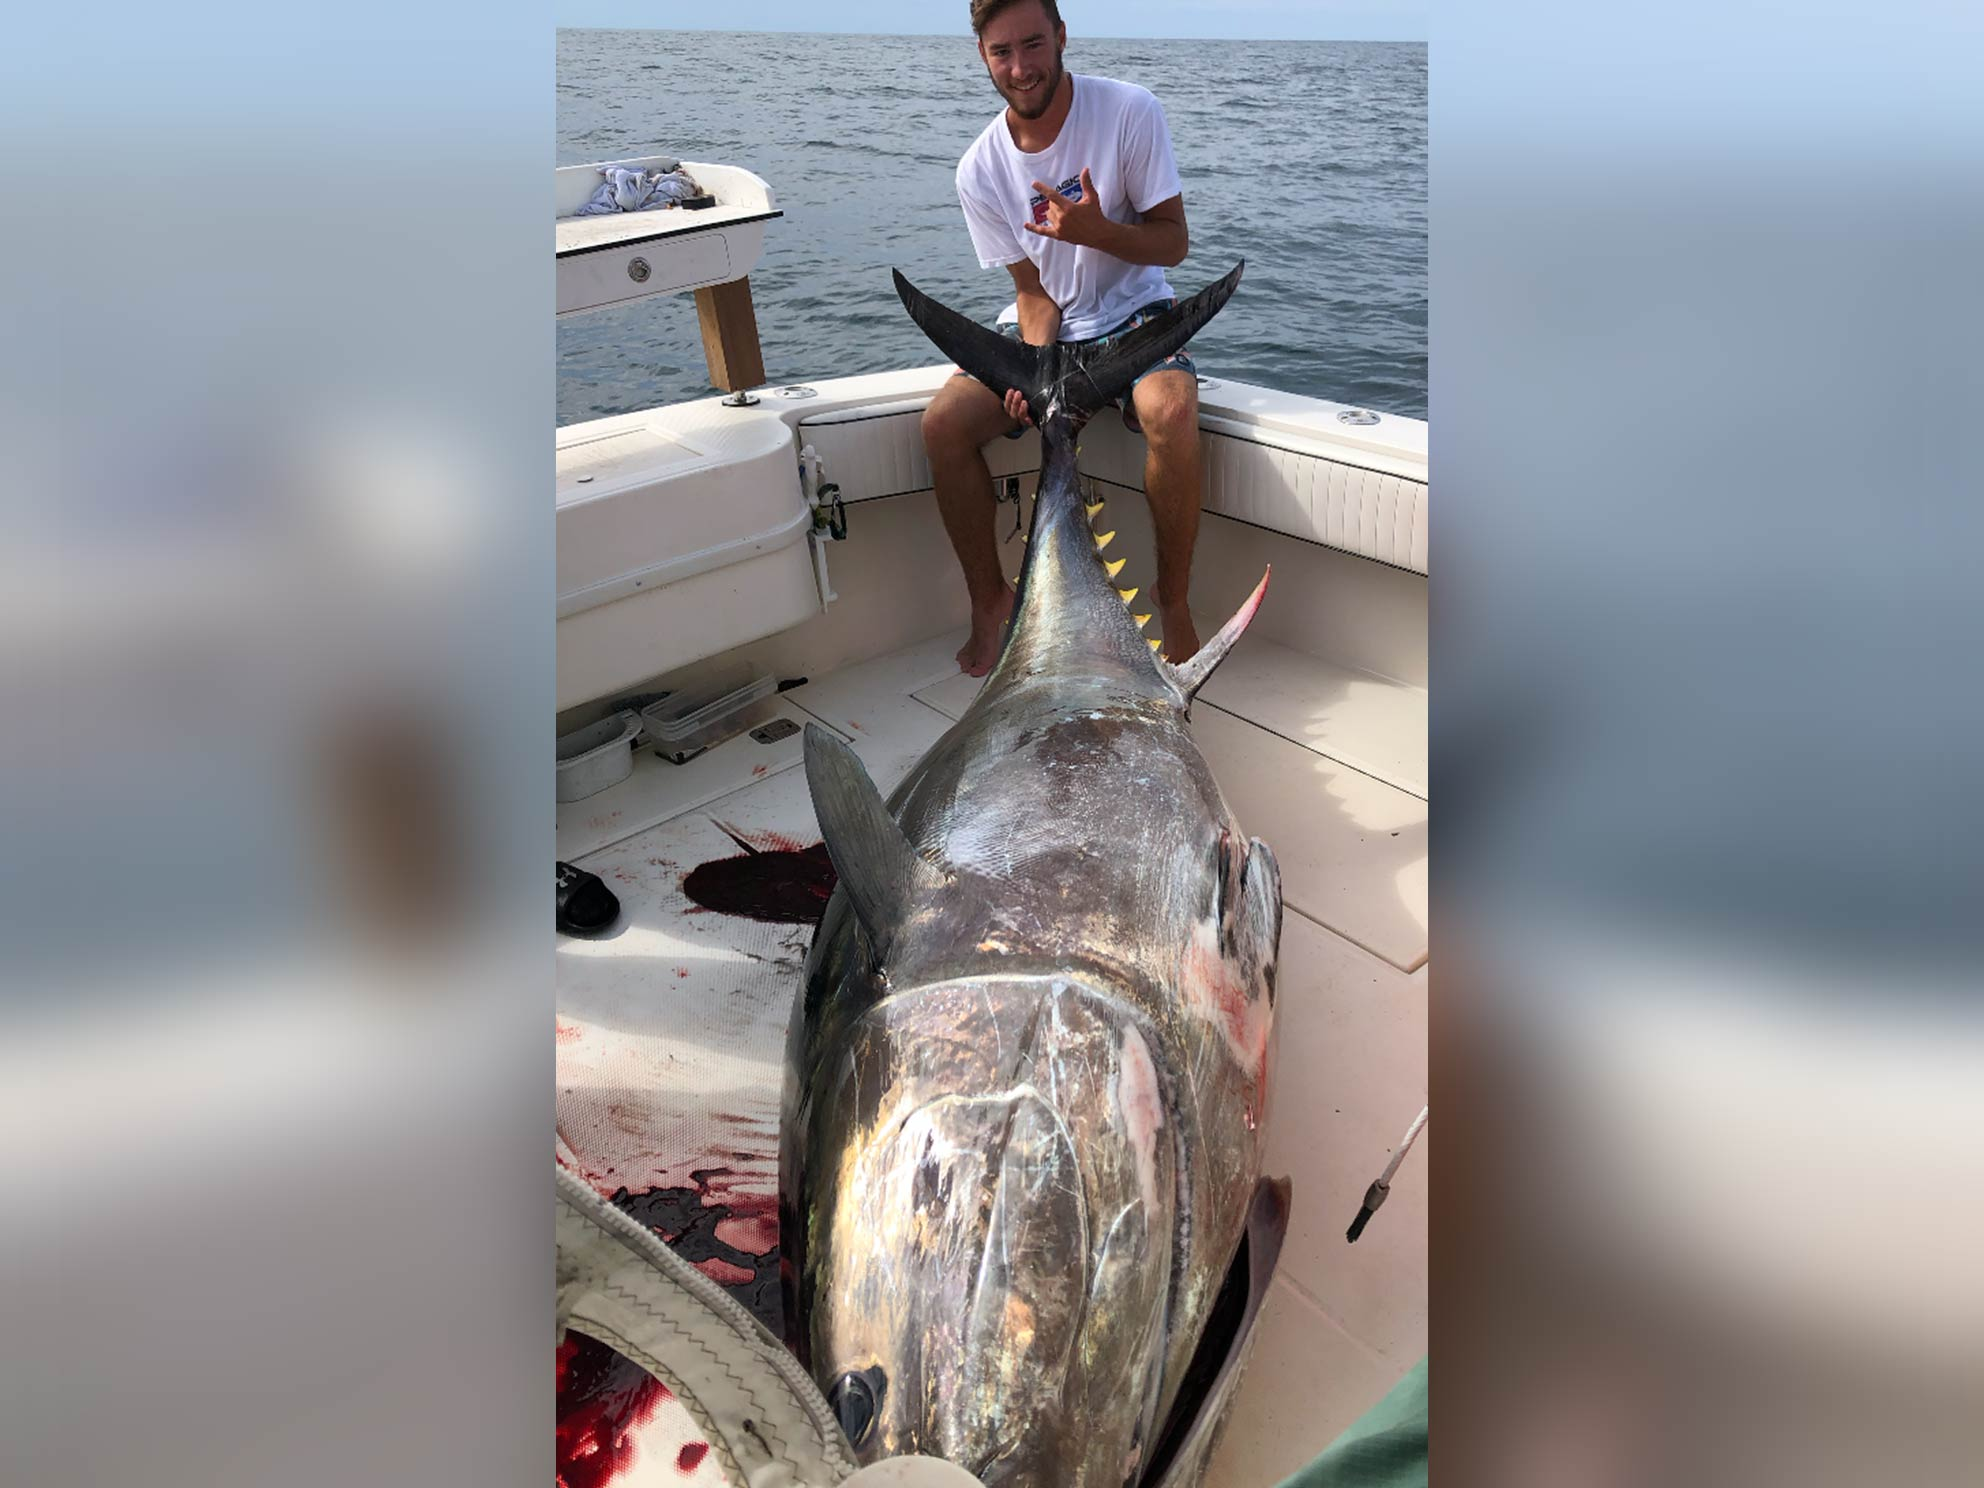 A fisherman sitting in the corner of a boat, holding the tail of a trophy 900 lb Tuna